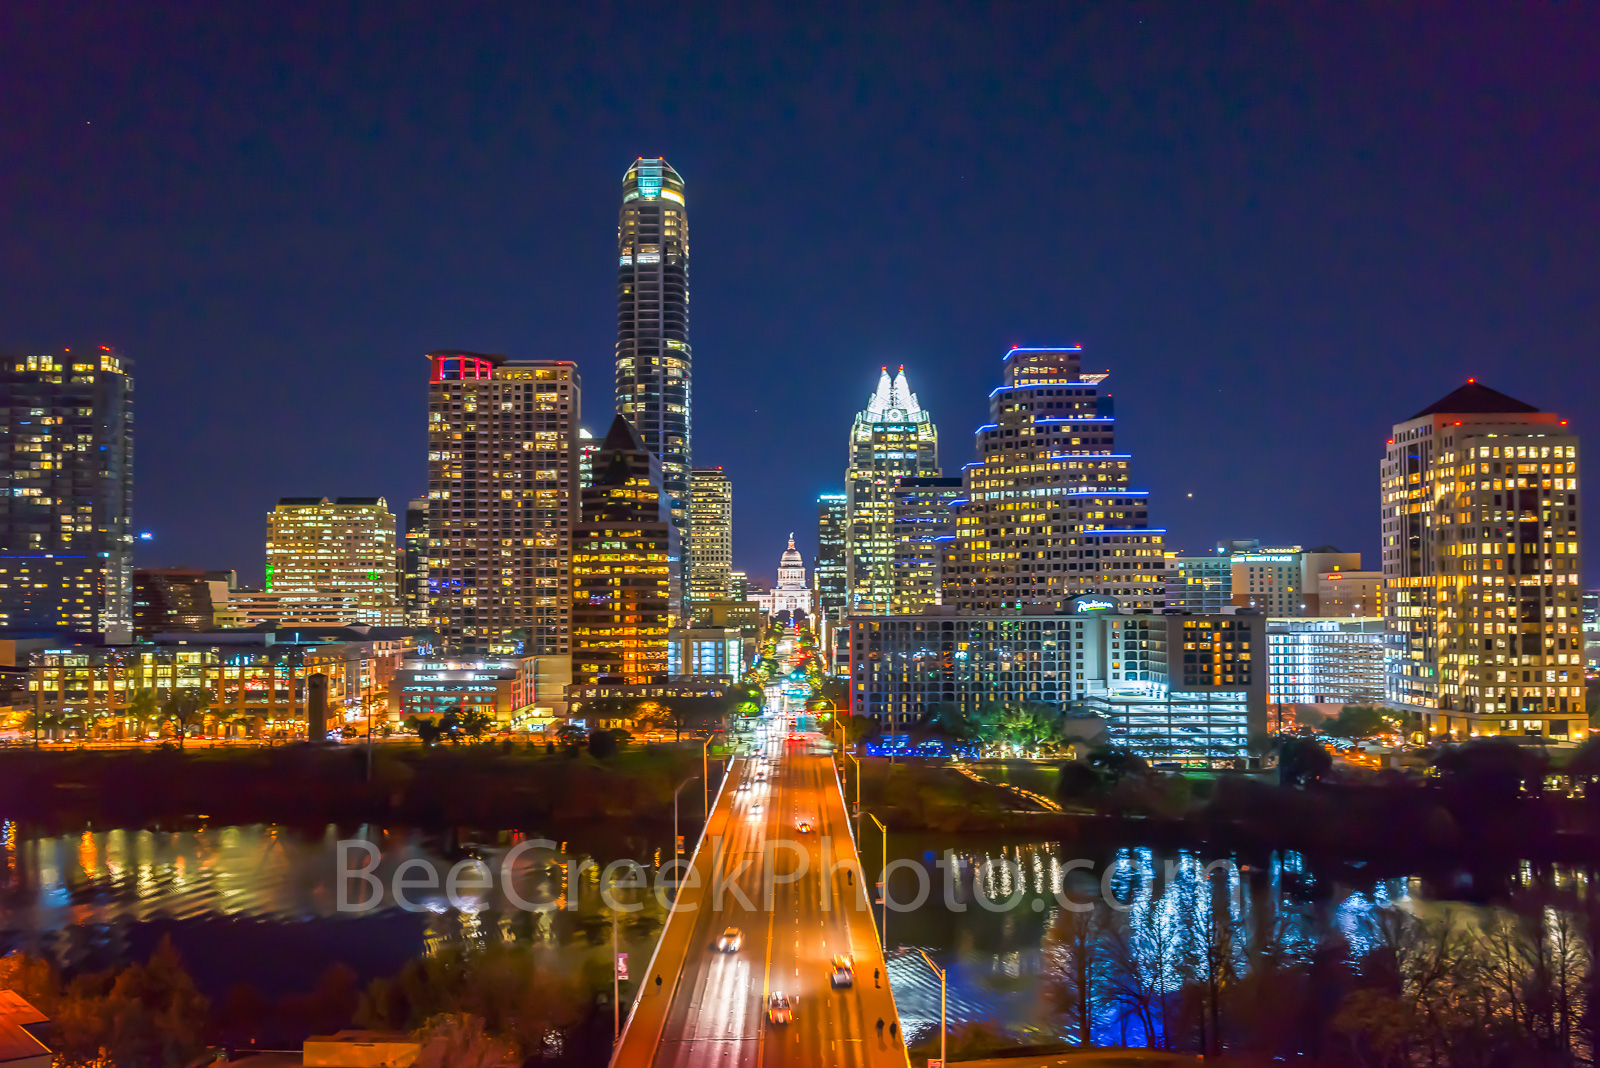 Austin Skyline at Congress ave, Austin, aerial, skyline, skylines, cityscapes, cityscape, downtown, modern, city, cities, urban, Congress ave. city scene, landscape, architectual, skyscrapers, Texas C, photo